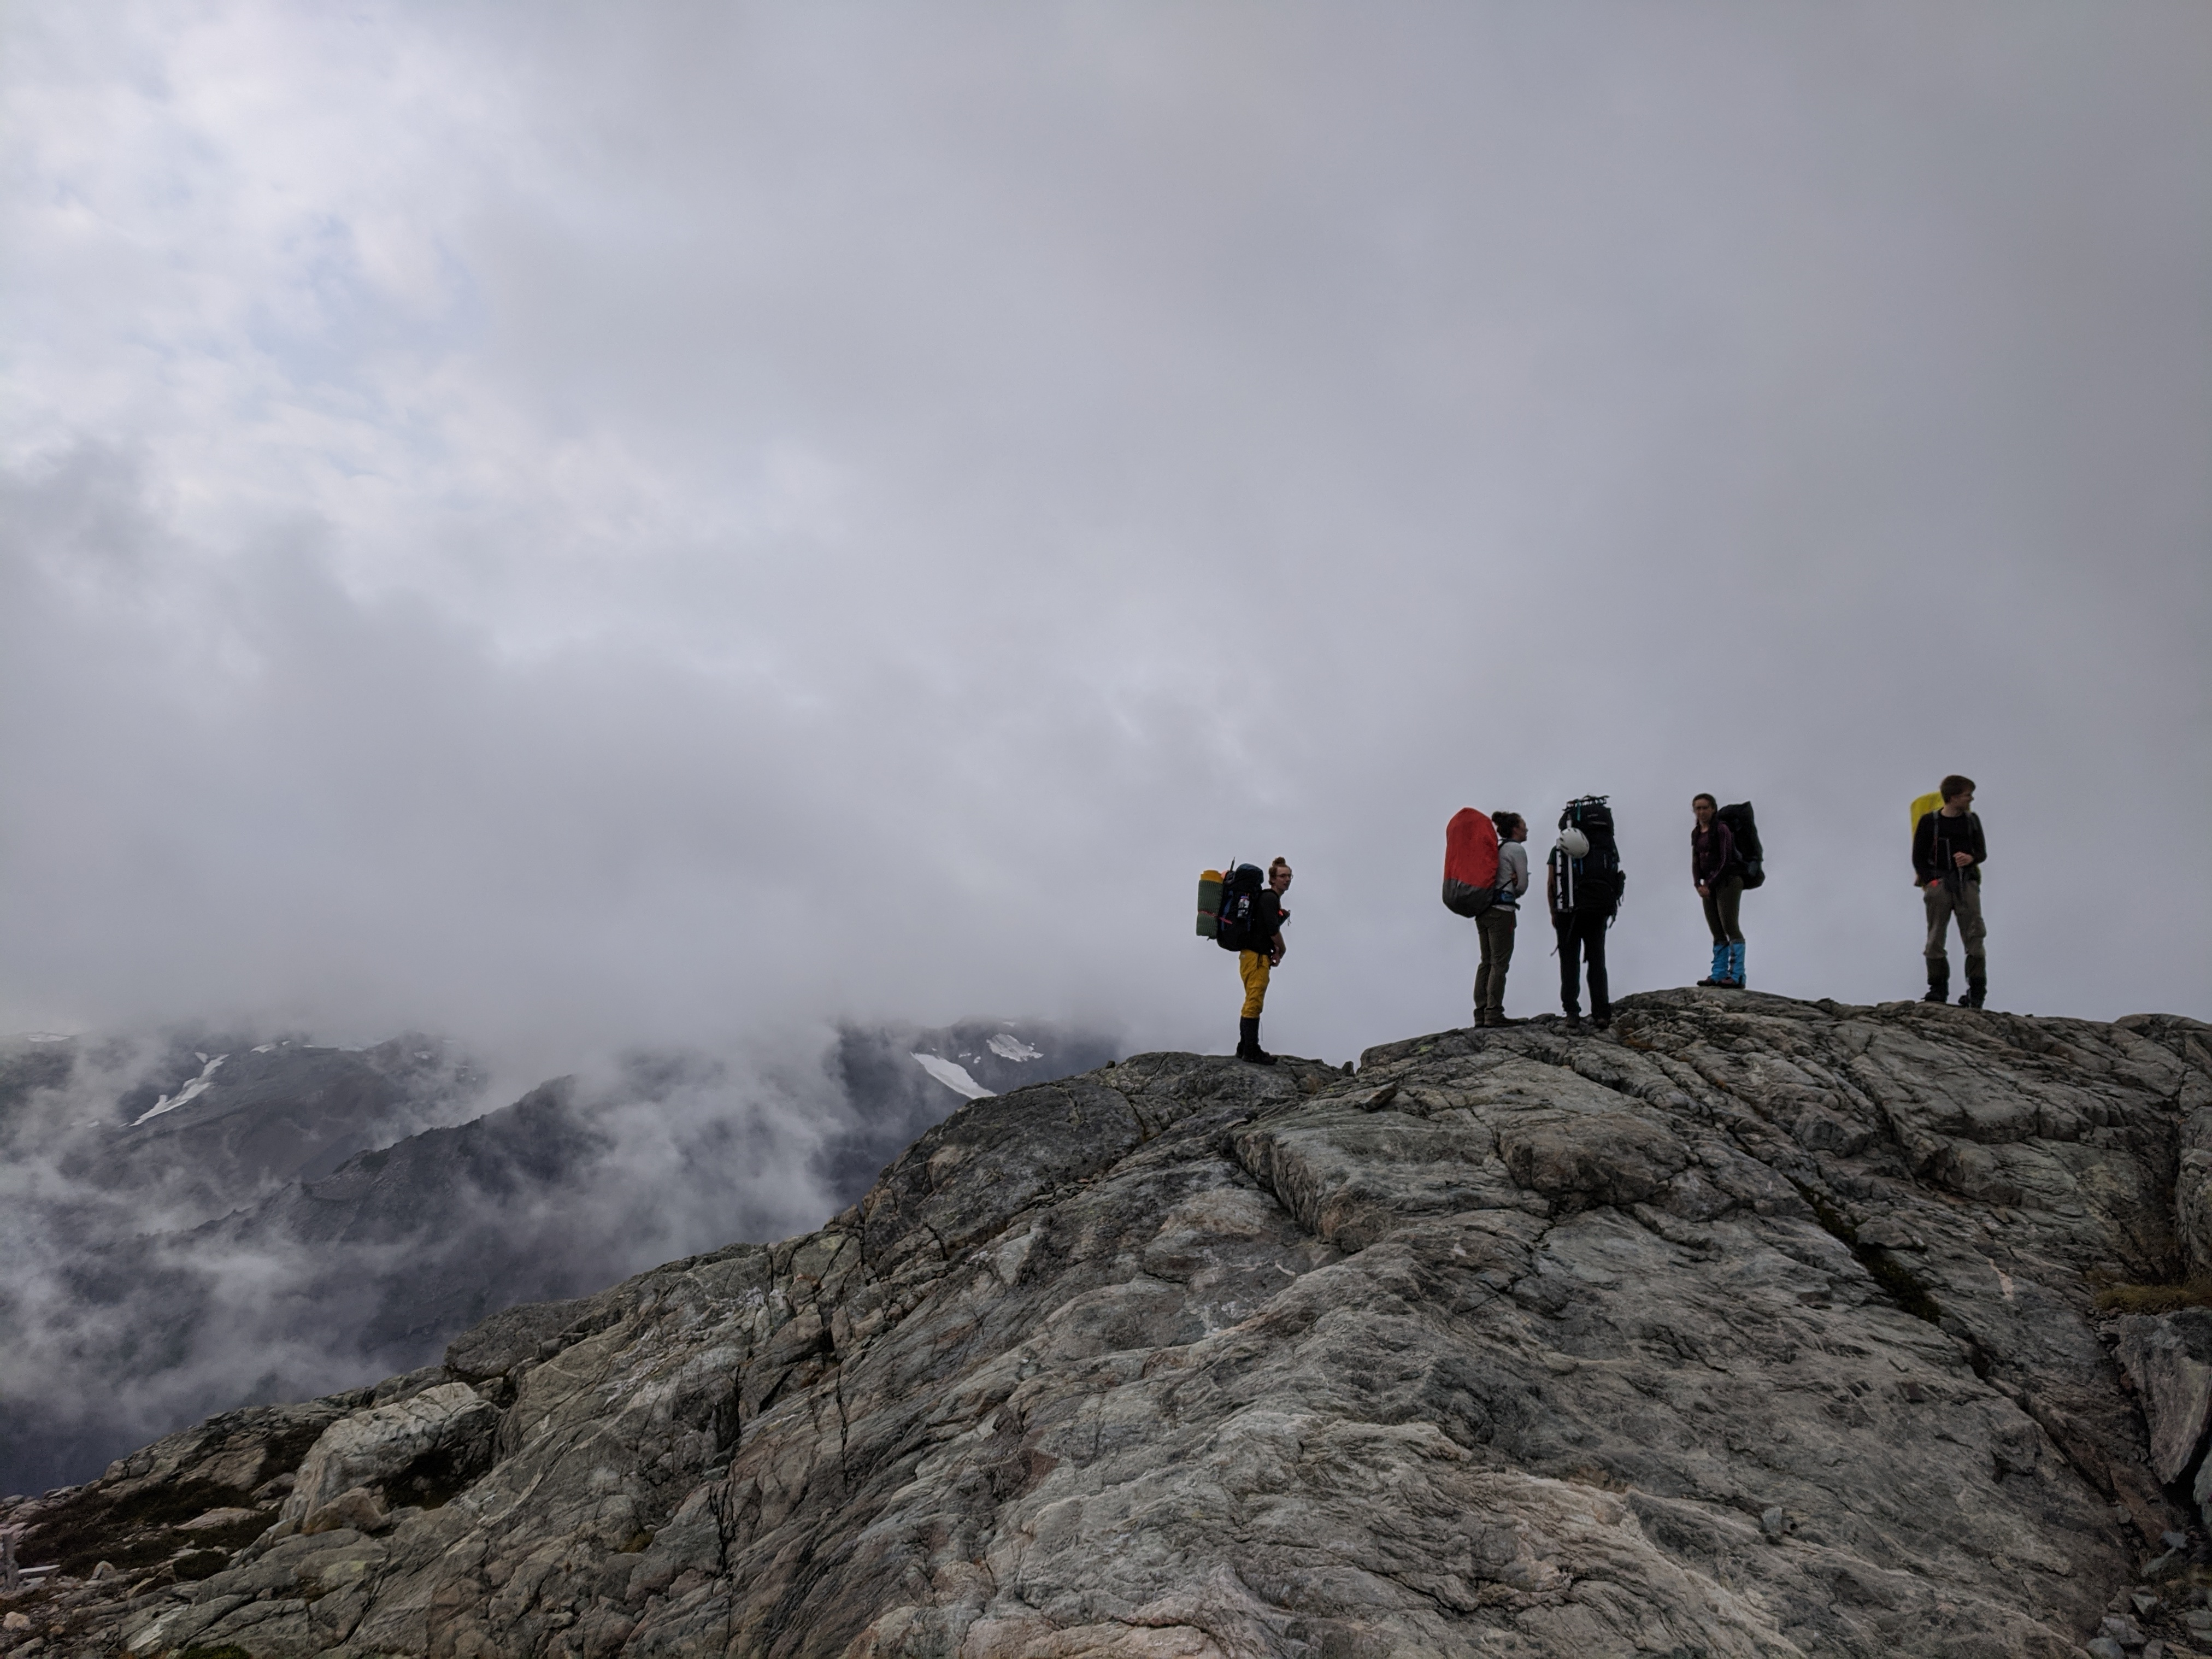 Members of Kai's group in the fog. Photo by Jacob Grossbard